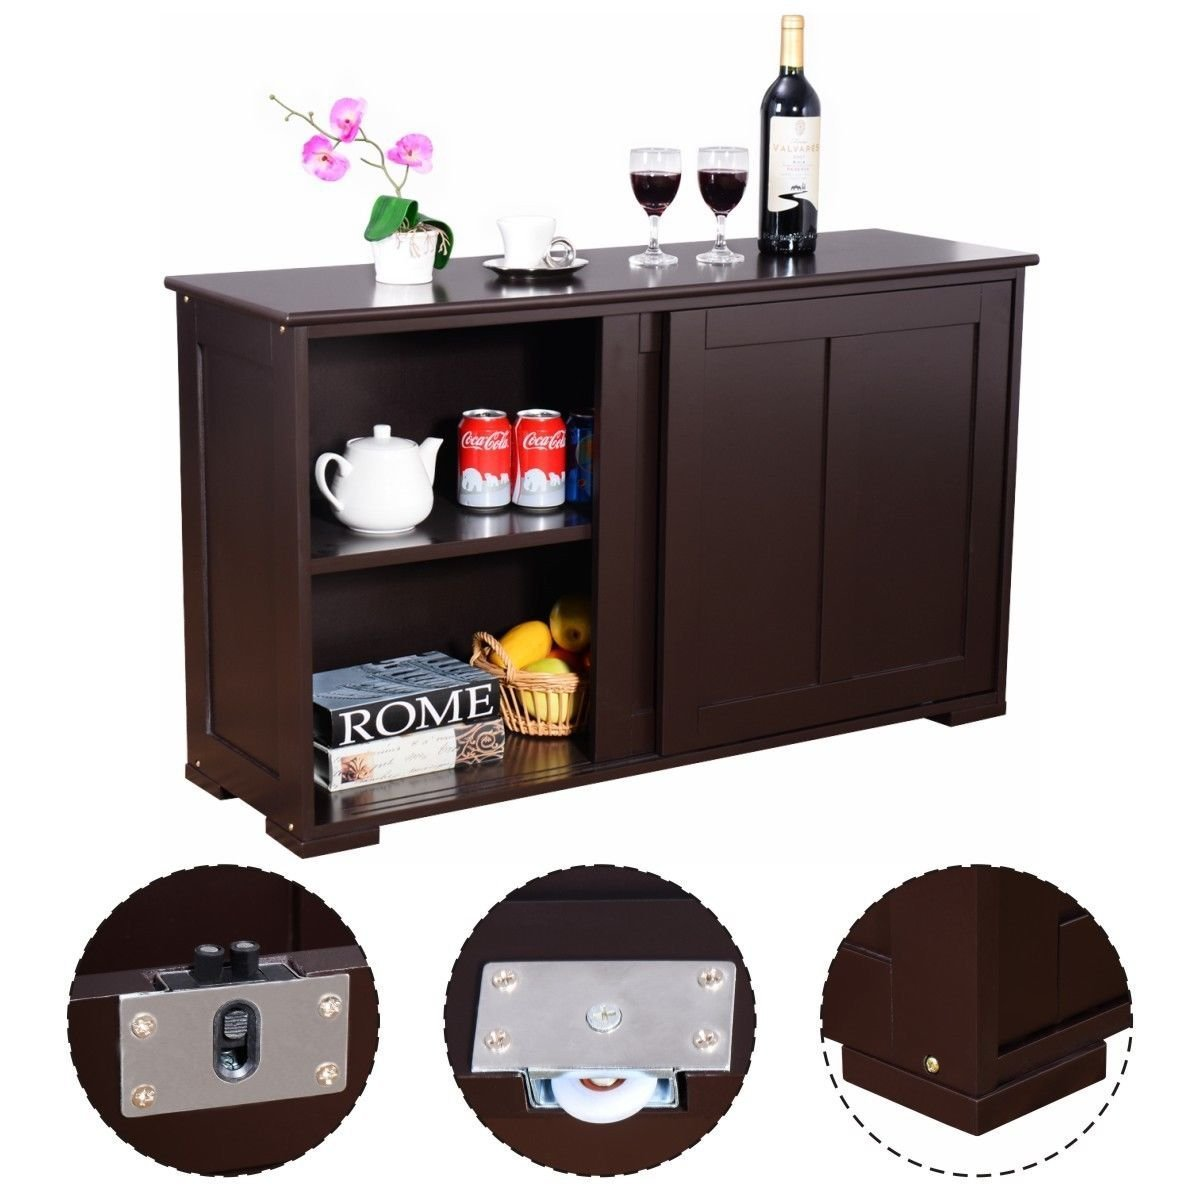 Shop here costzon kitchen storage sideboard antique stackable cabinet for home cupboard buffet dining room espresso sideboard with sliding door